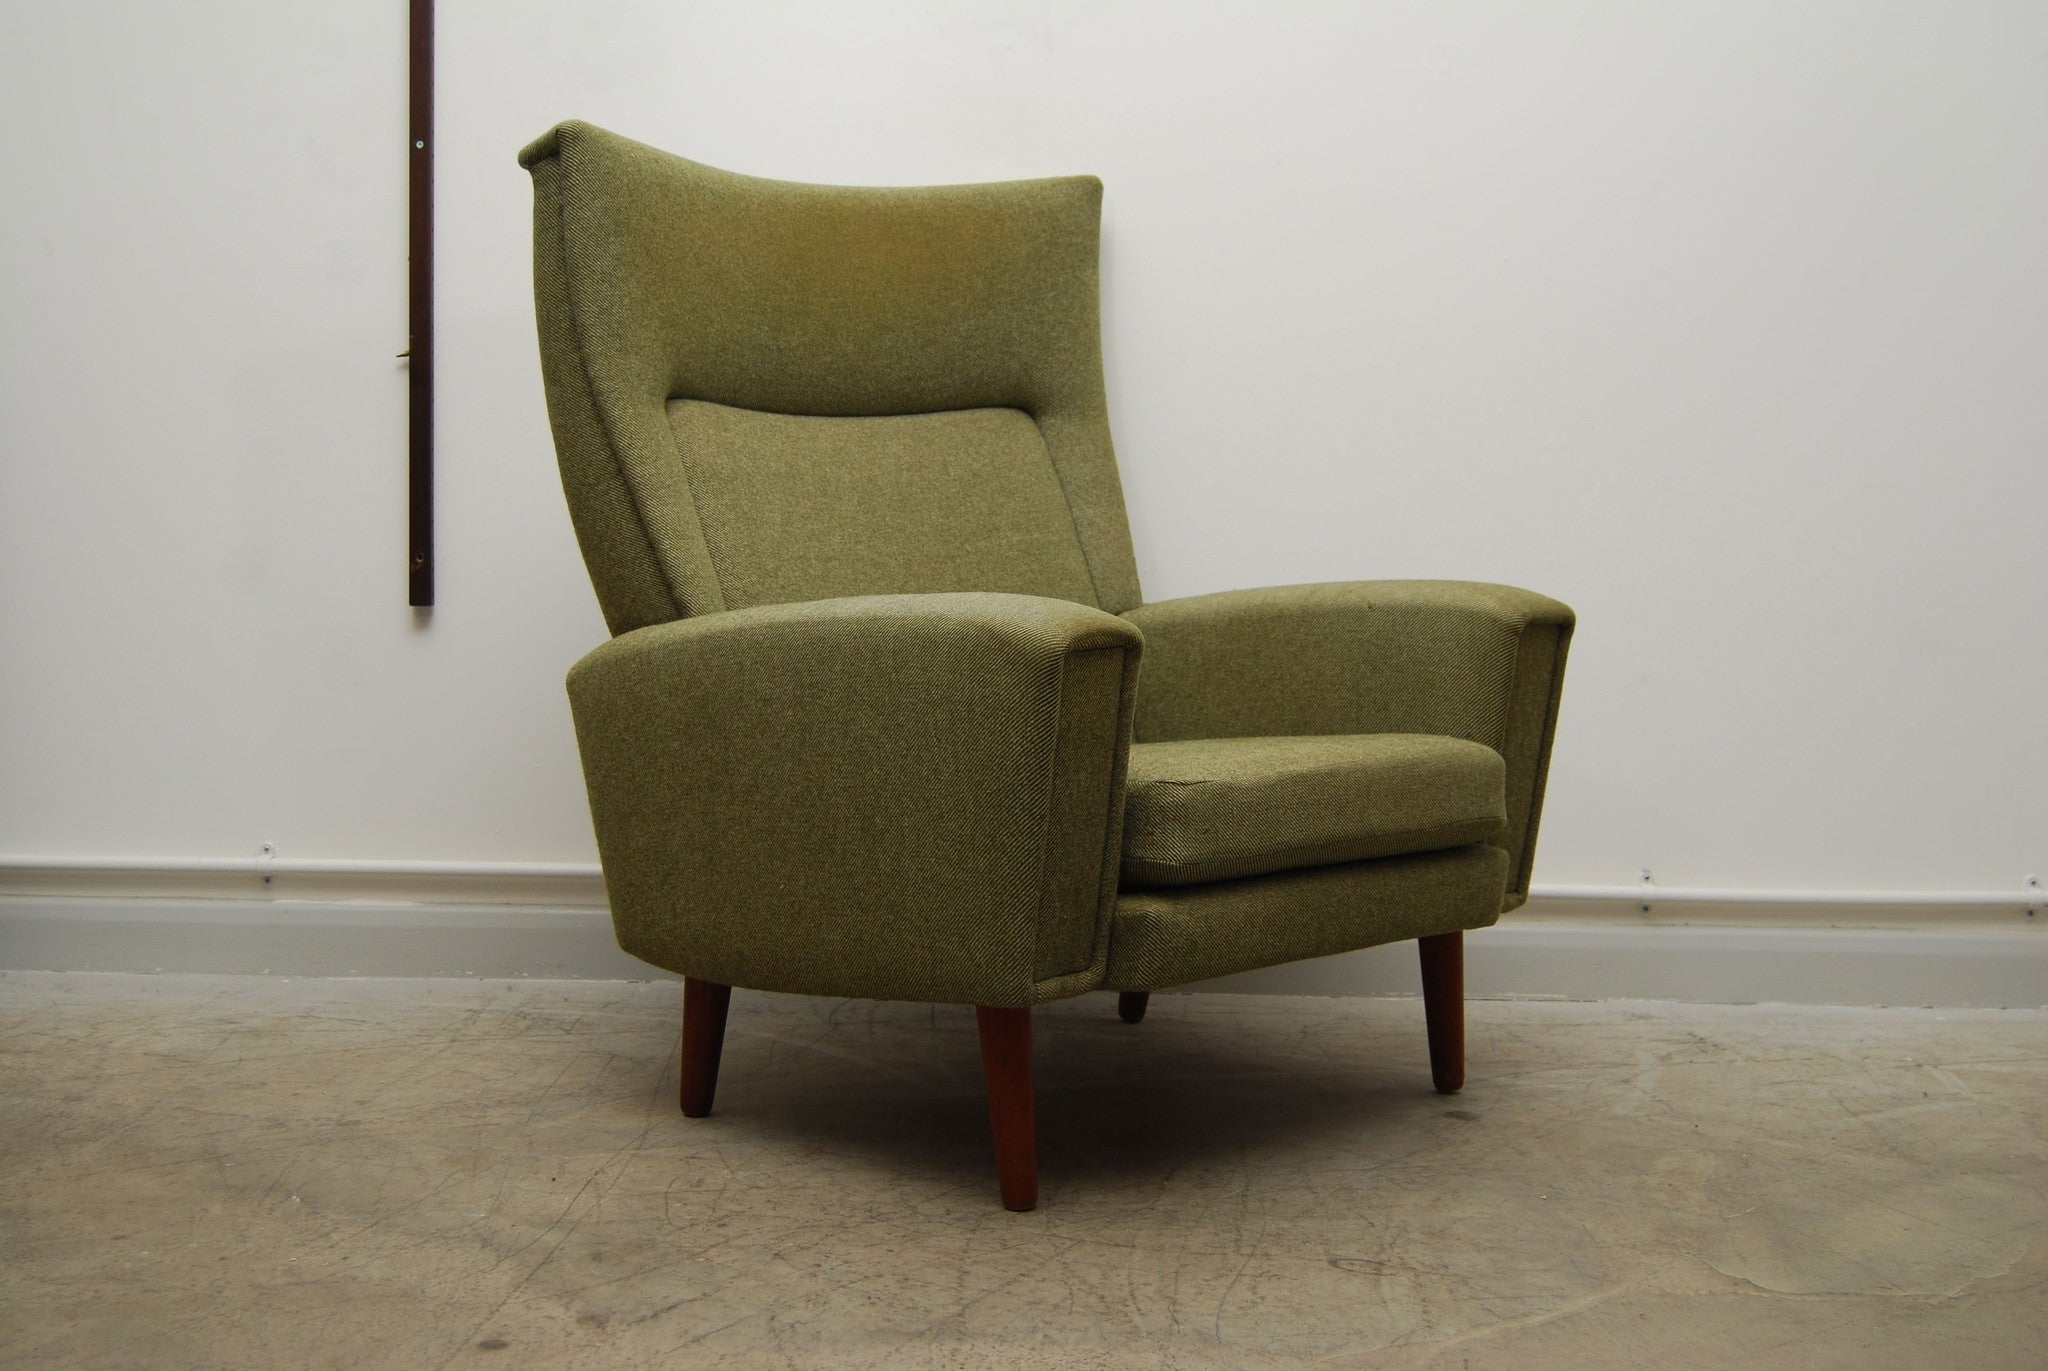 Chase & Sorensen Highback lounge chair in tweed